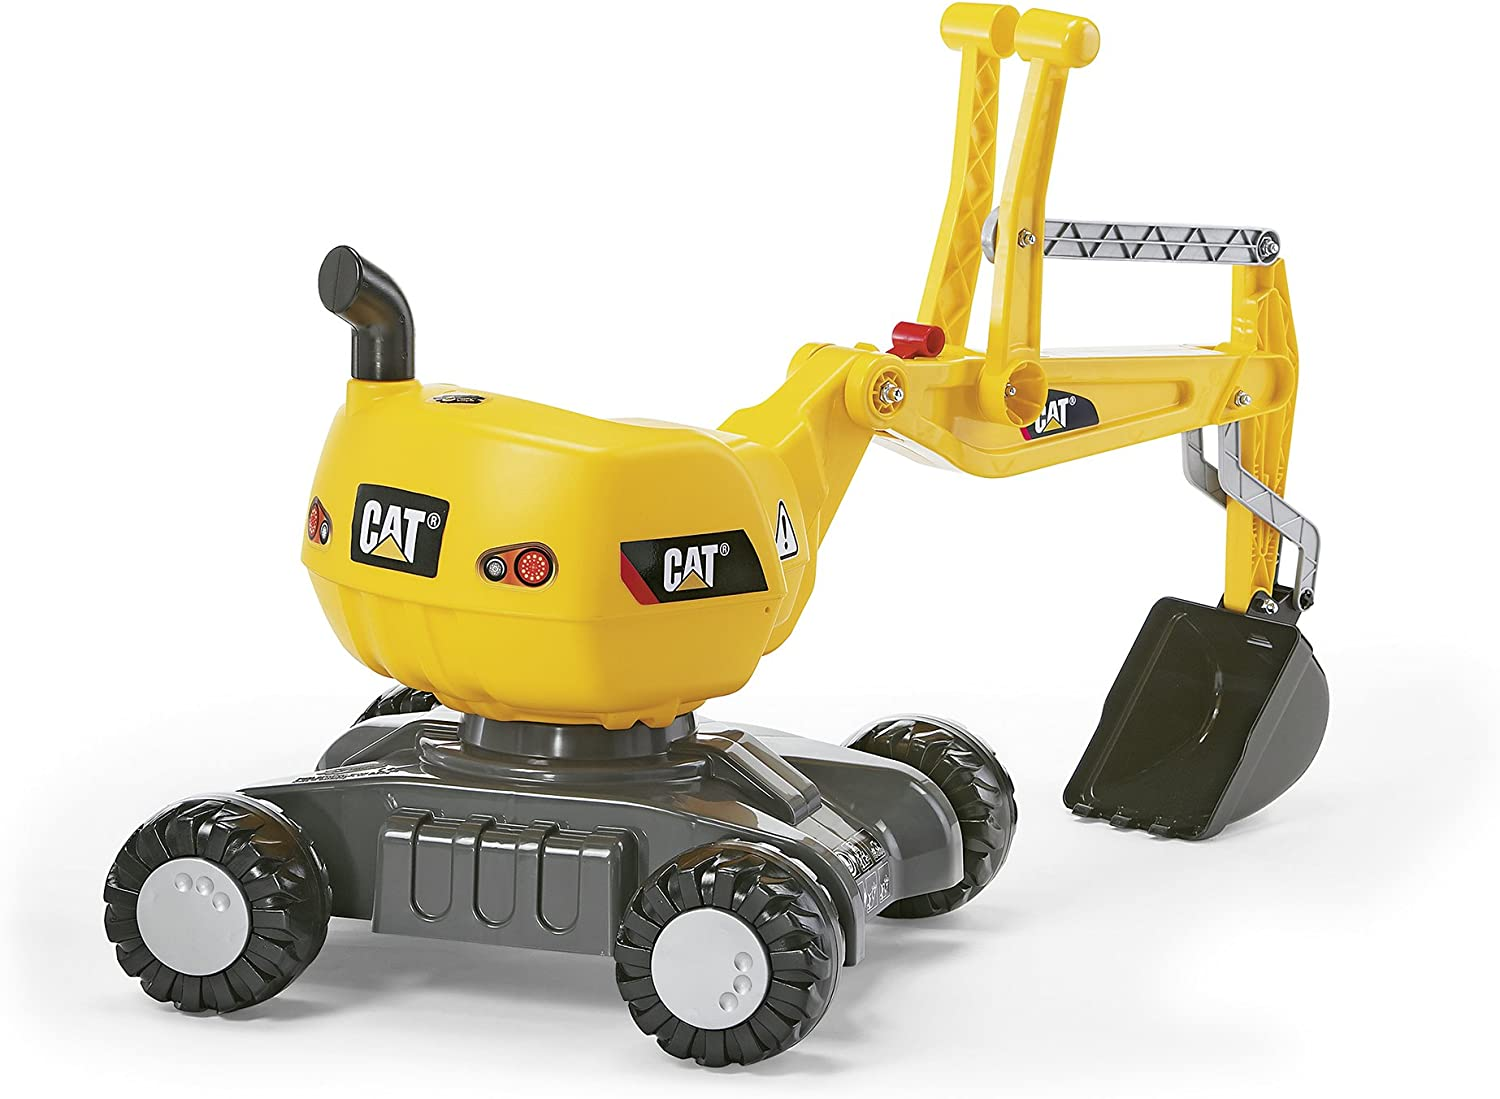 Rolly Toys 421015 CAT Excavator Fully functional with wheels